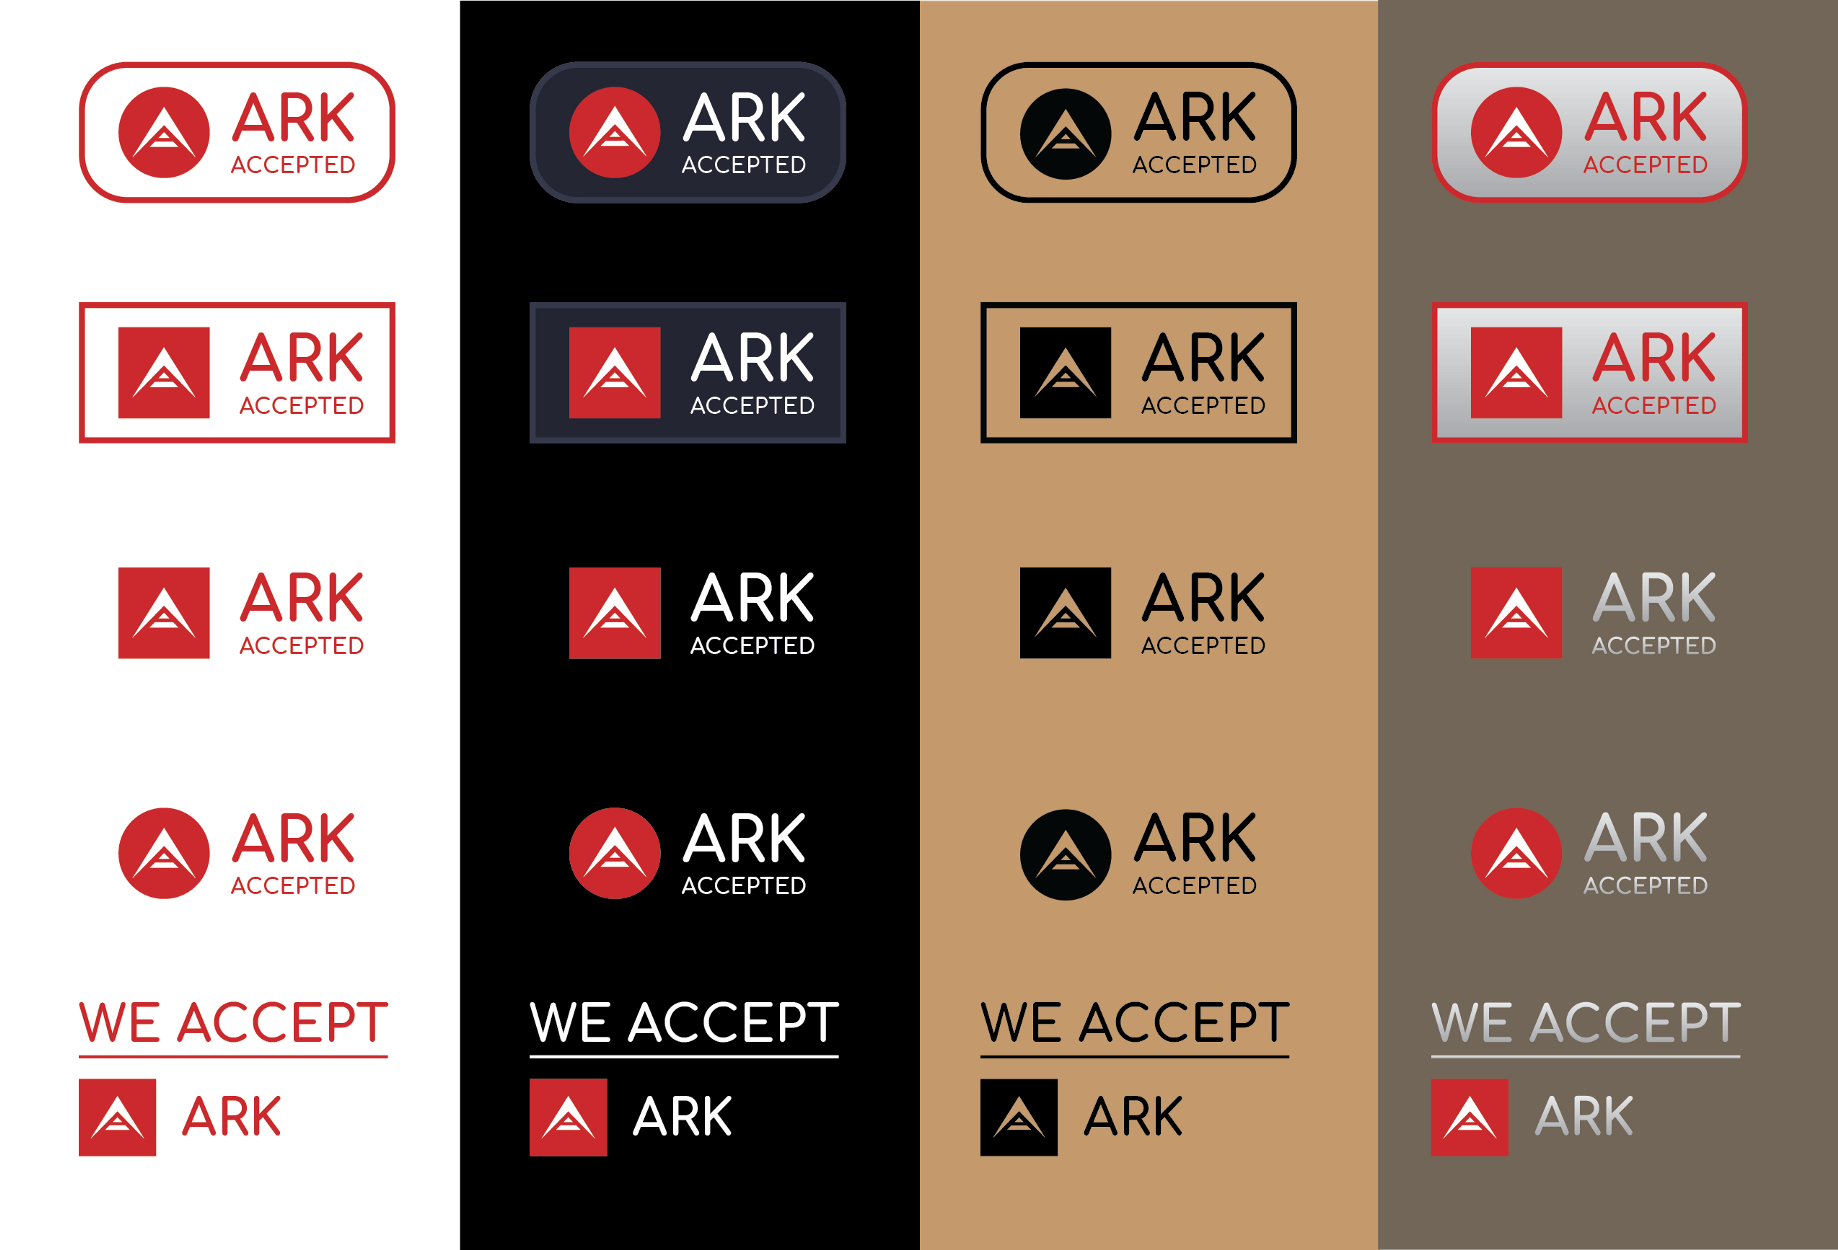 ARK Accepted buttons - Azure Infinity - Medium